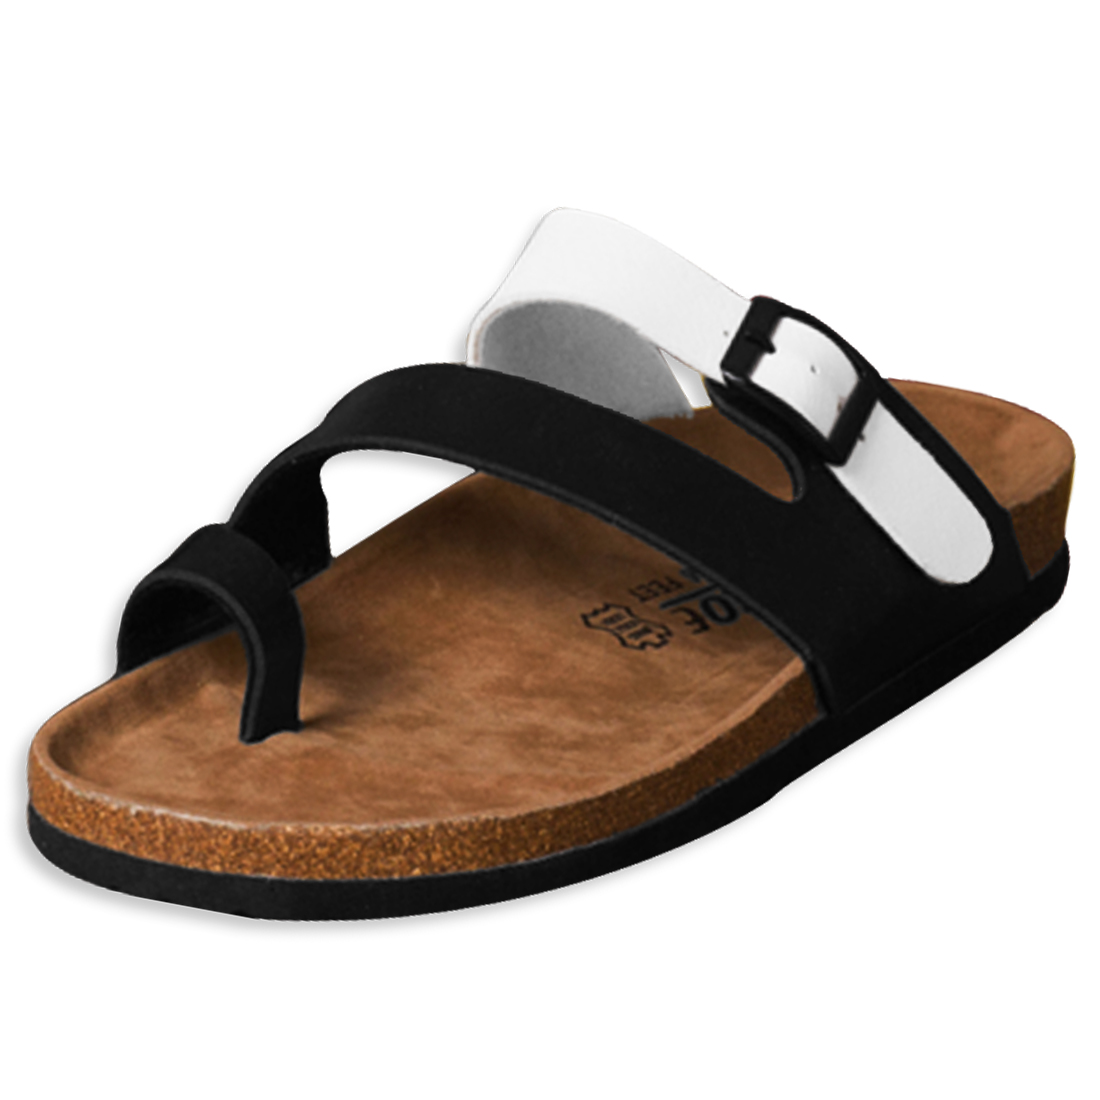 Black White Toe-ring Buckled Sandals for Women & Men US 9